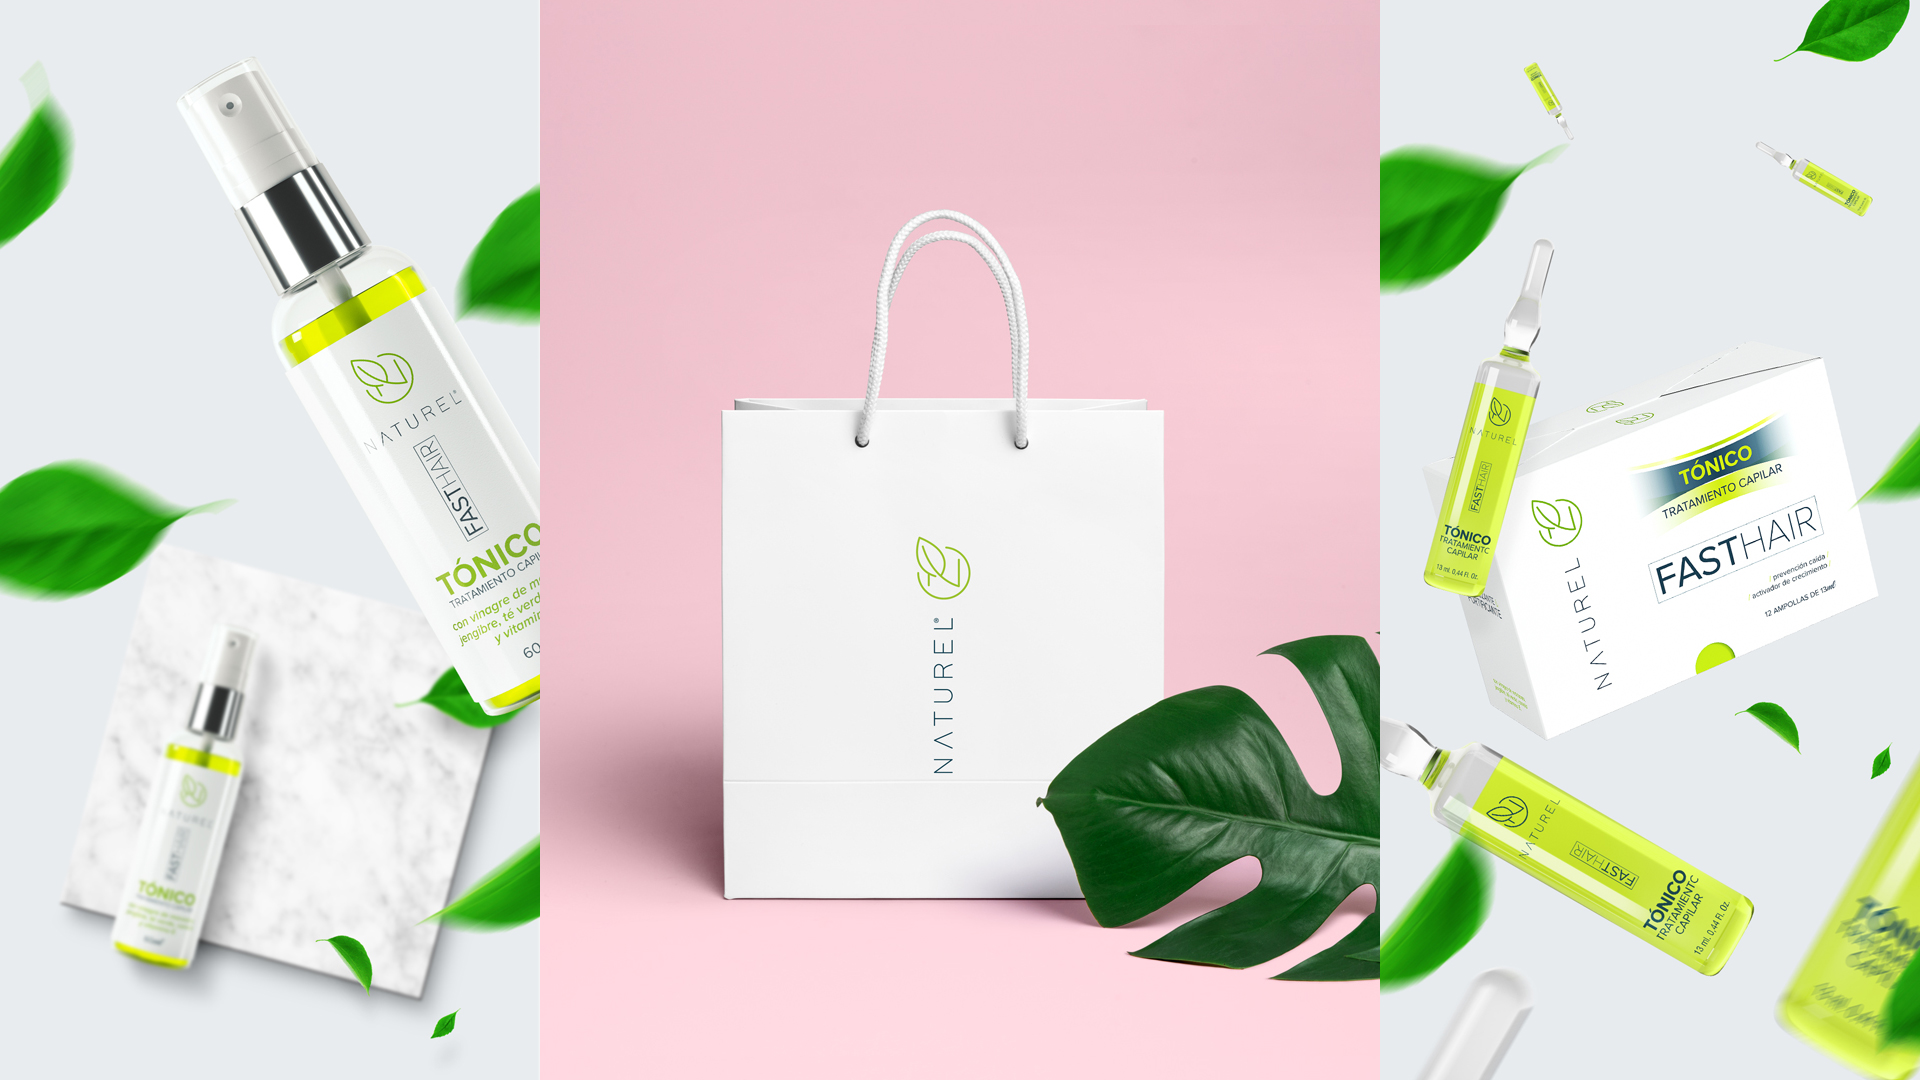 Packaging Design for Naturel Fasthair Products / World Brand Design Society